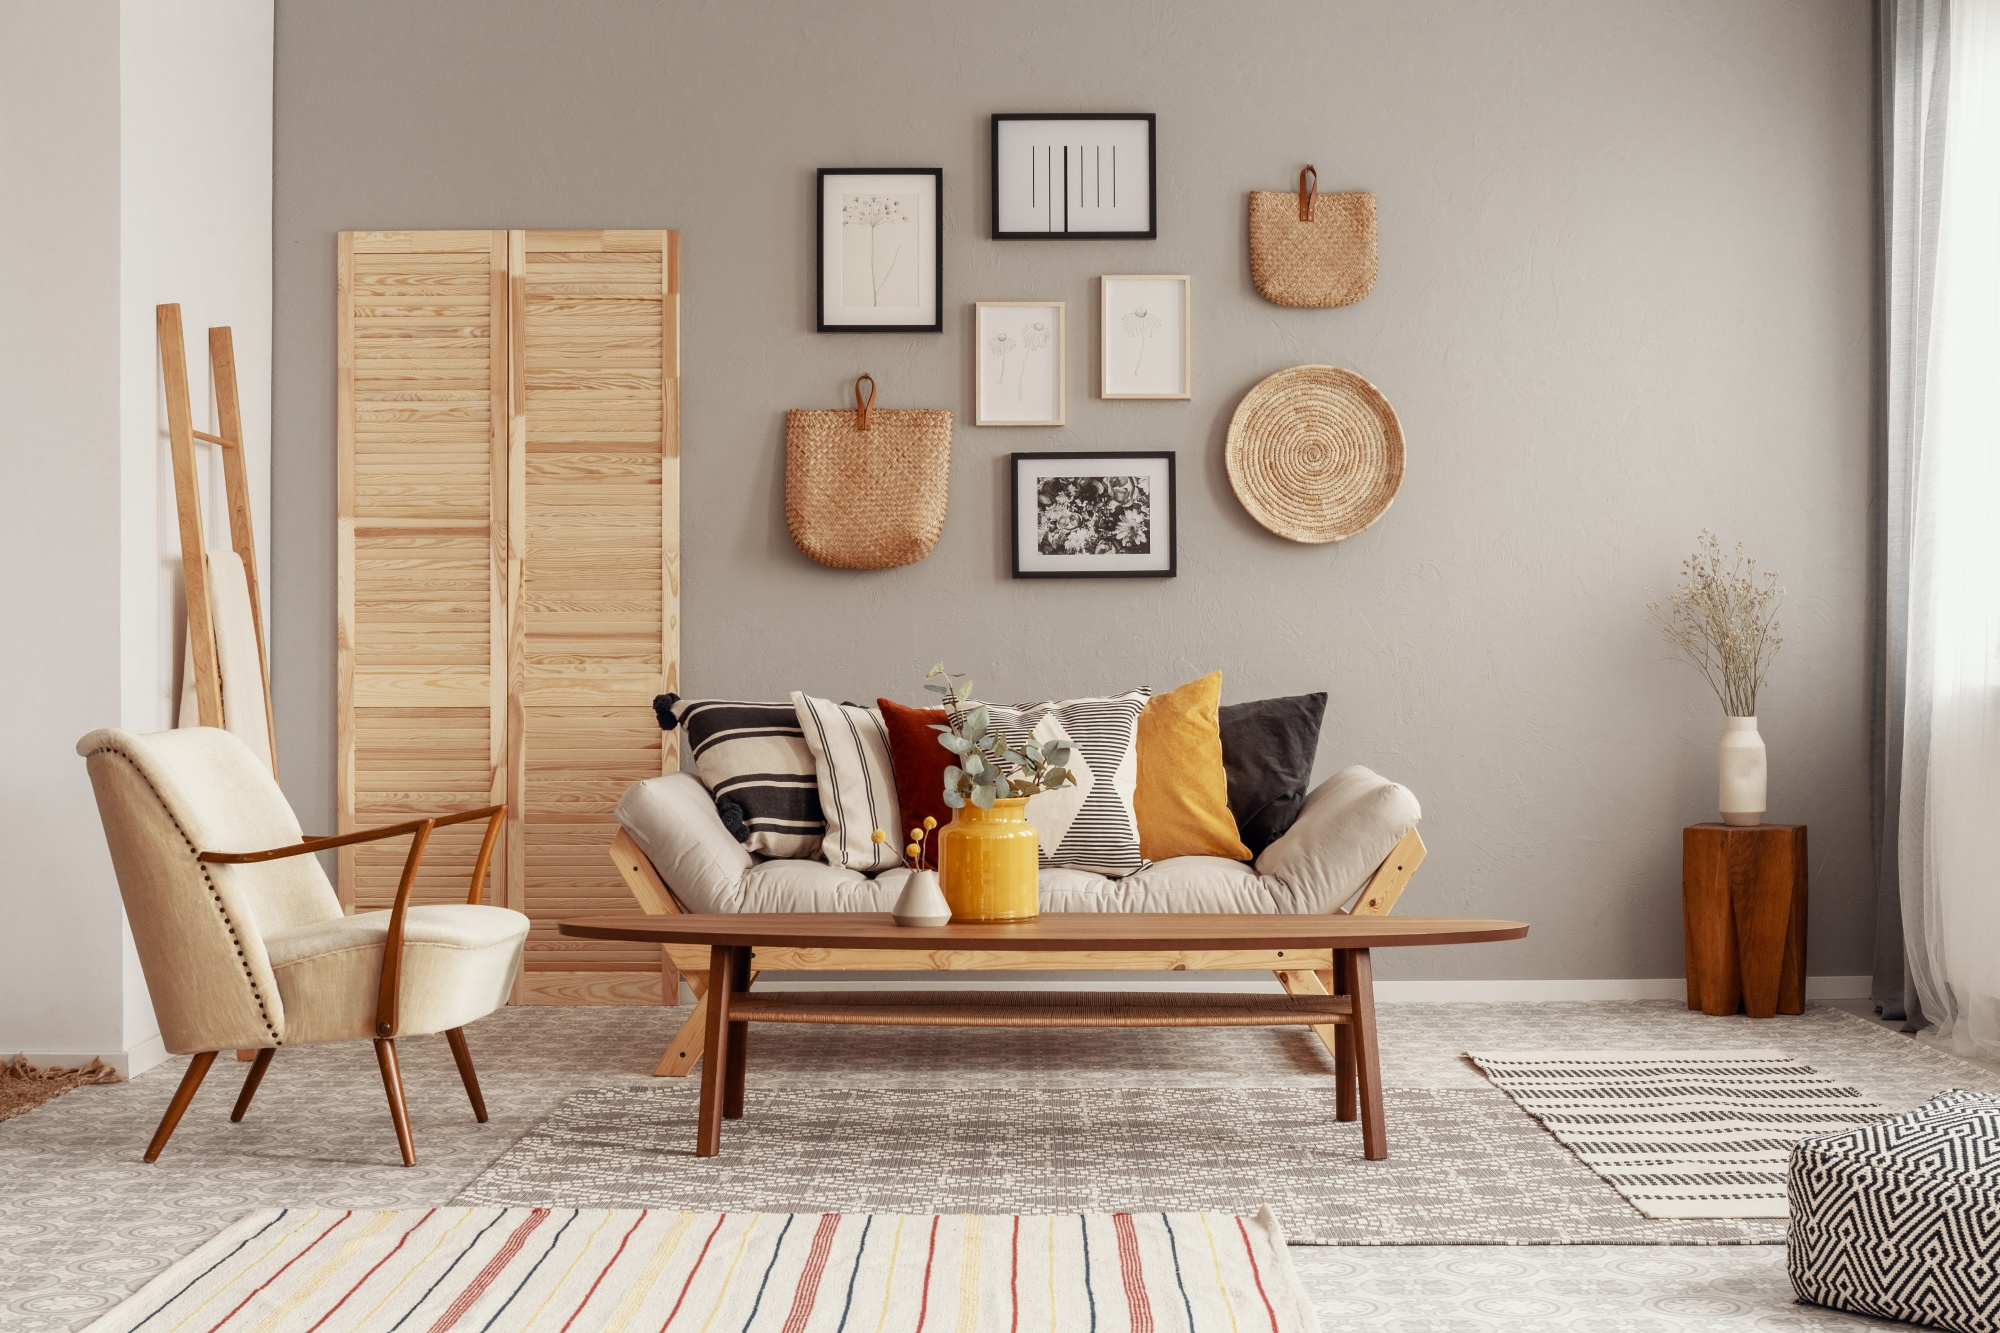 5 Easy Steps To The Perfect and Unique Gallery Wall including hanging baskets and photographs in neutral colors against a light grey wall with wooden shutters and a wooden ladder off to the side